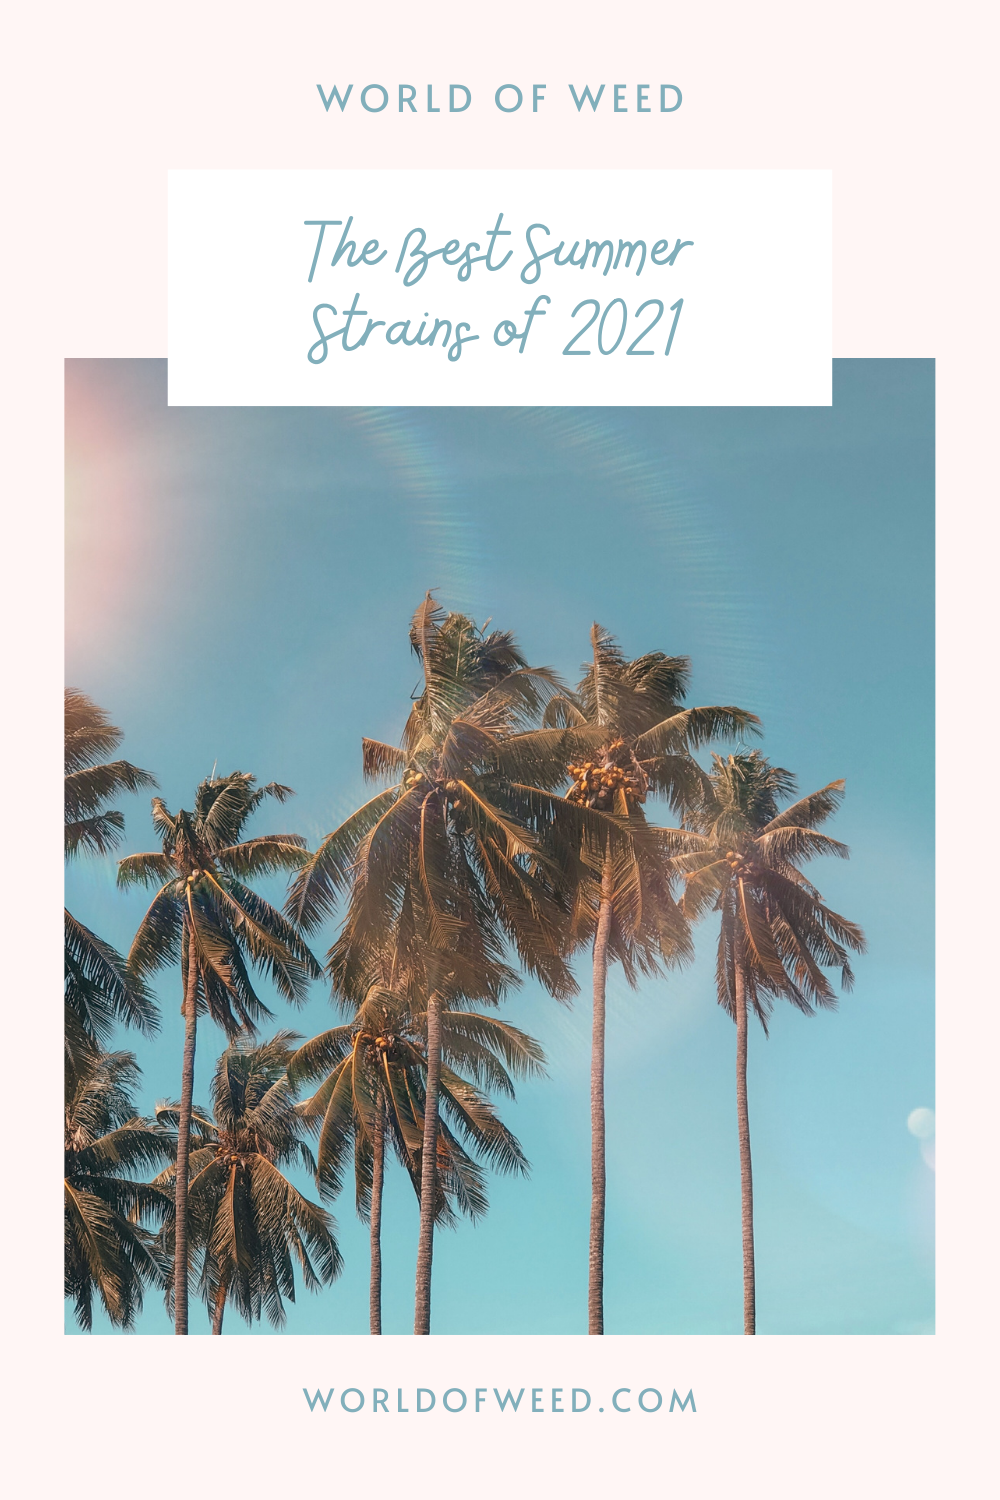 The Best Summer Strains of 2021